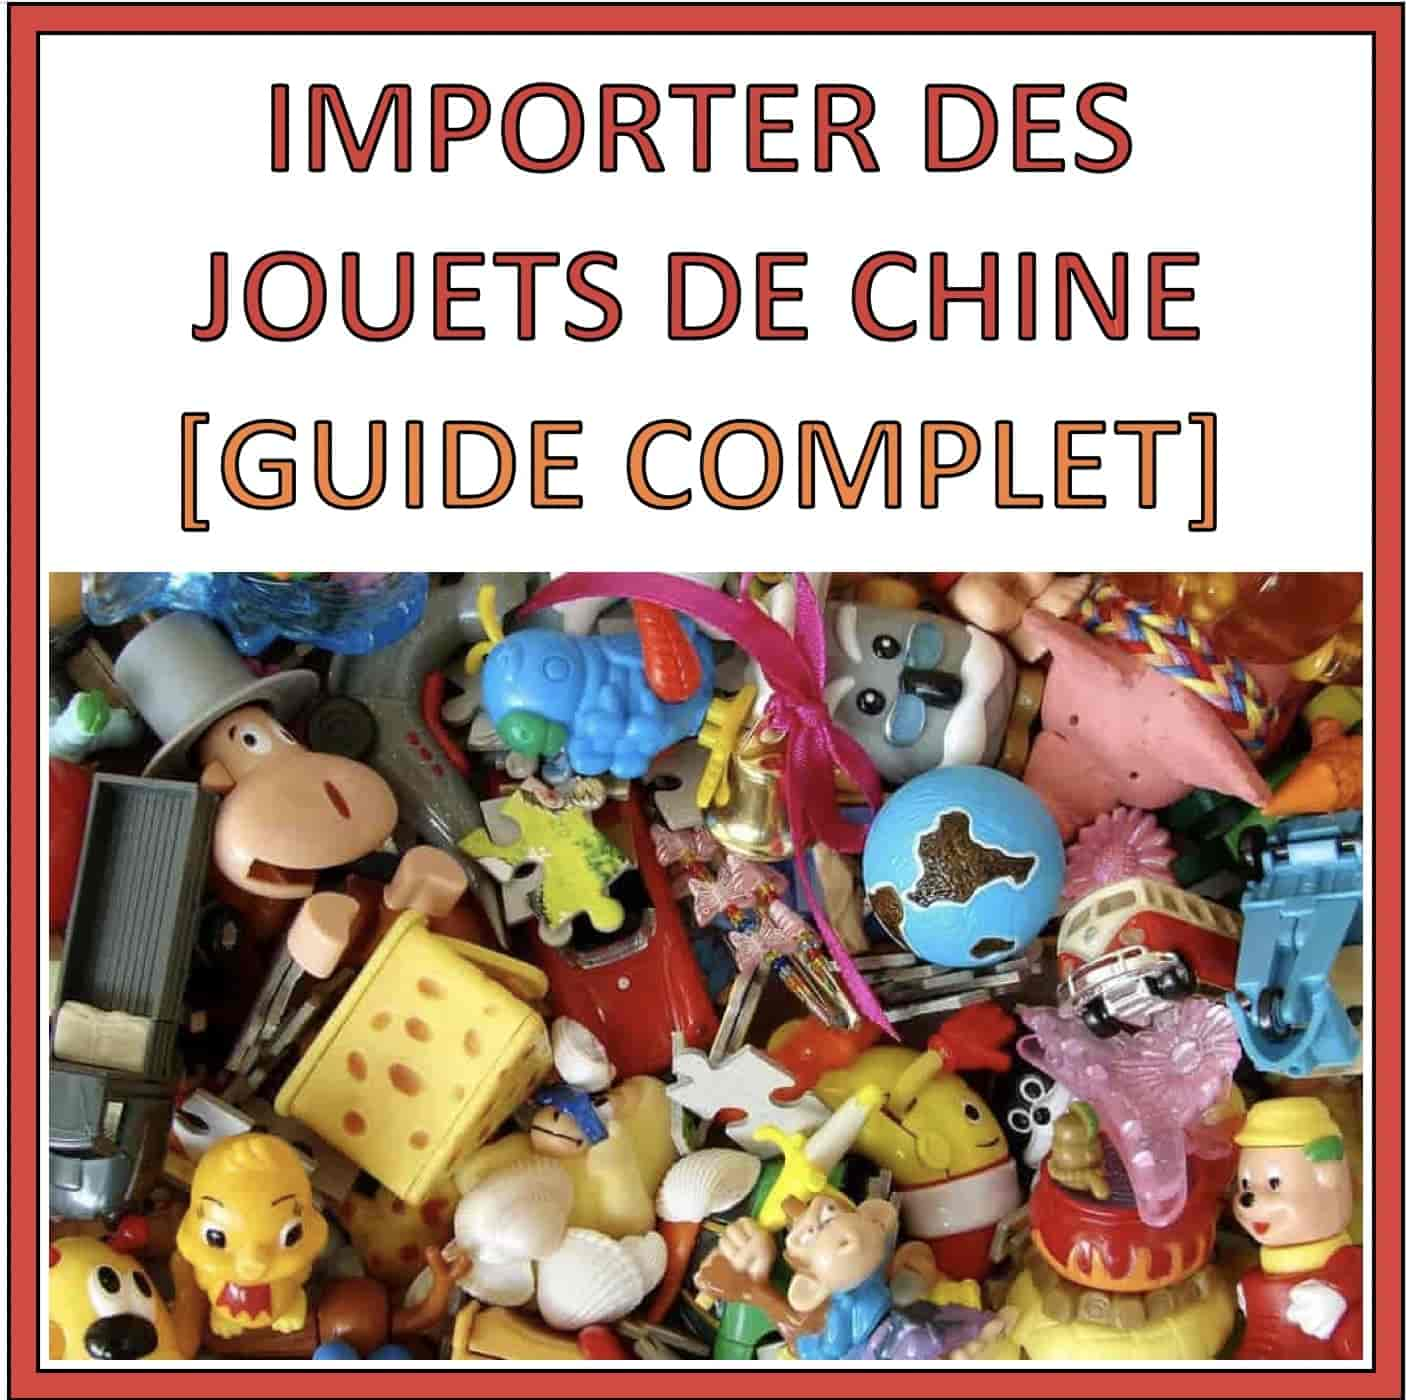 fournisseur jouets chine guide